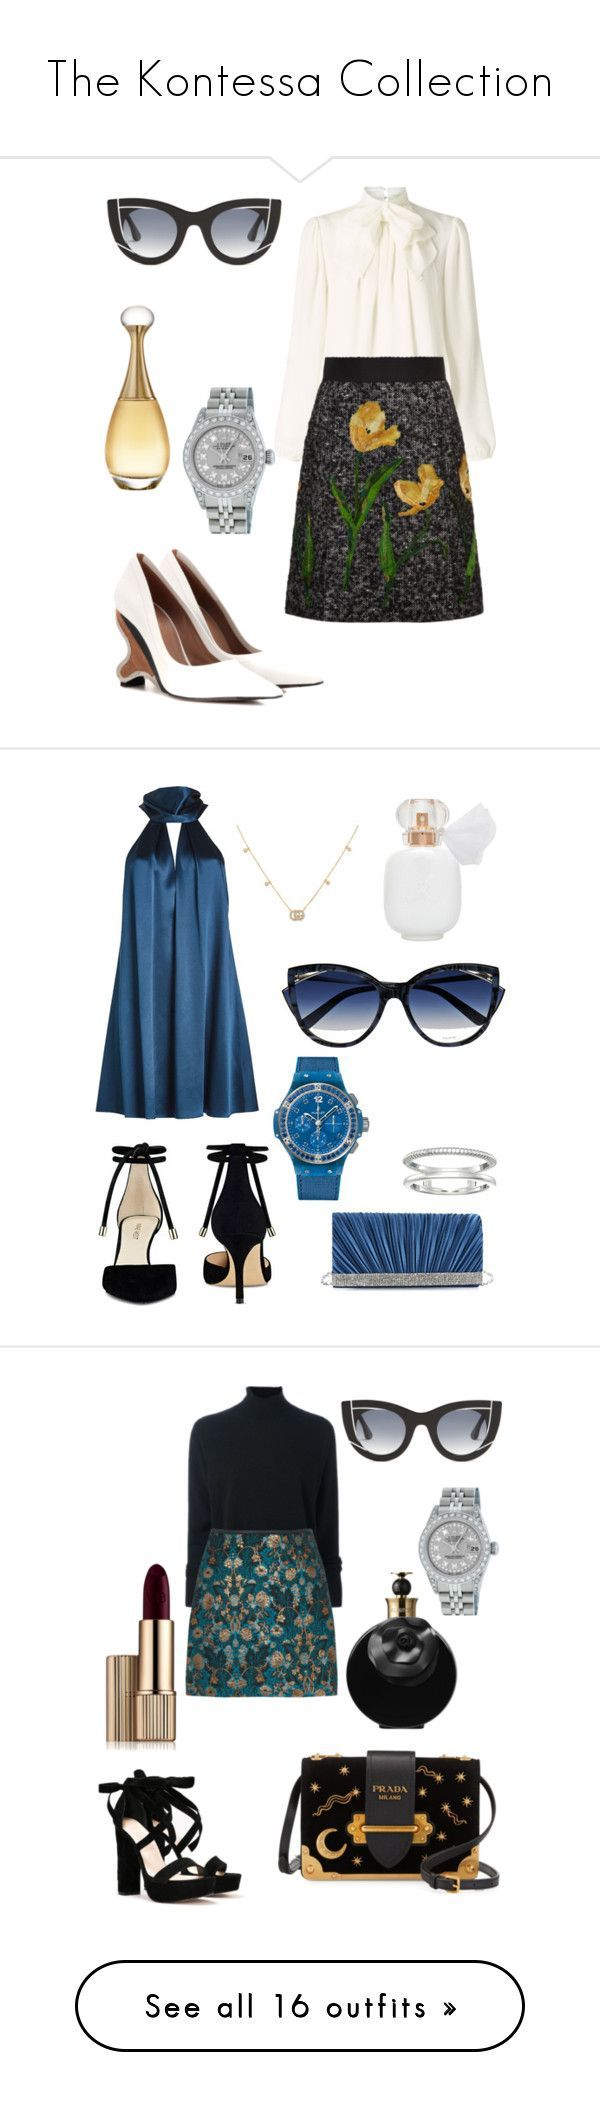 The Kontessa Collection by missnaia on Polyvore featuring polyvore, fashion, style, Somerset by Alice Temperley, Dolce&Gabbana, Marni, Rolex, Thierry Lasry, Christian Dior, clothing, Galvan, Gunne Sax By Jessica McClintock, Shinola, Nine West, Hublot, La Perla, Gucci, Le Kasha, Nasty Gal, Prada, Valentino, Estée Lauder, STELLA McCARTNEY, Yves Saint Laurent, Bobbi Brown Cosmetics, Urban Decay, Terry de Gunzburg, Isa Arfen, Loeffler Randall, Cynthia Rowley, Kakao By K, Miss Selfridge, Edie…